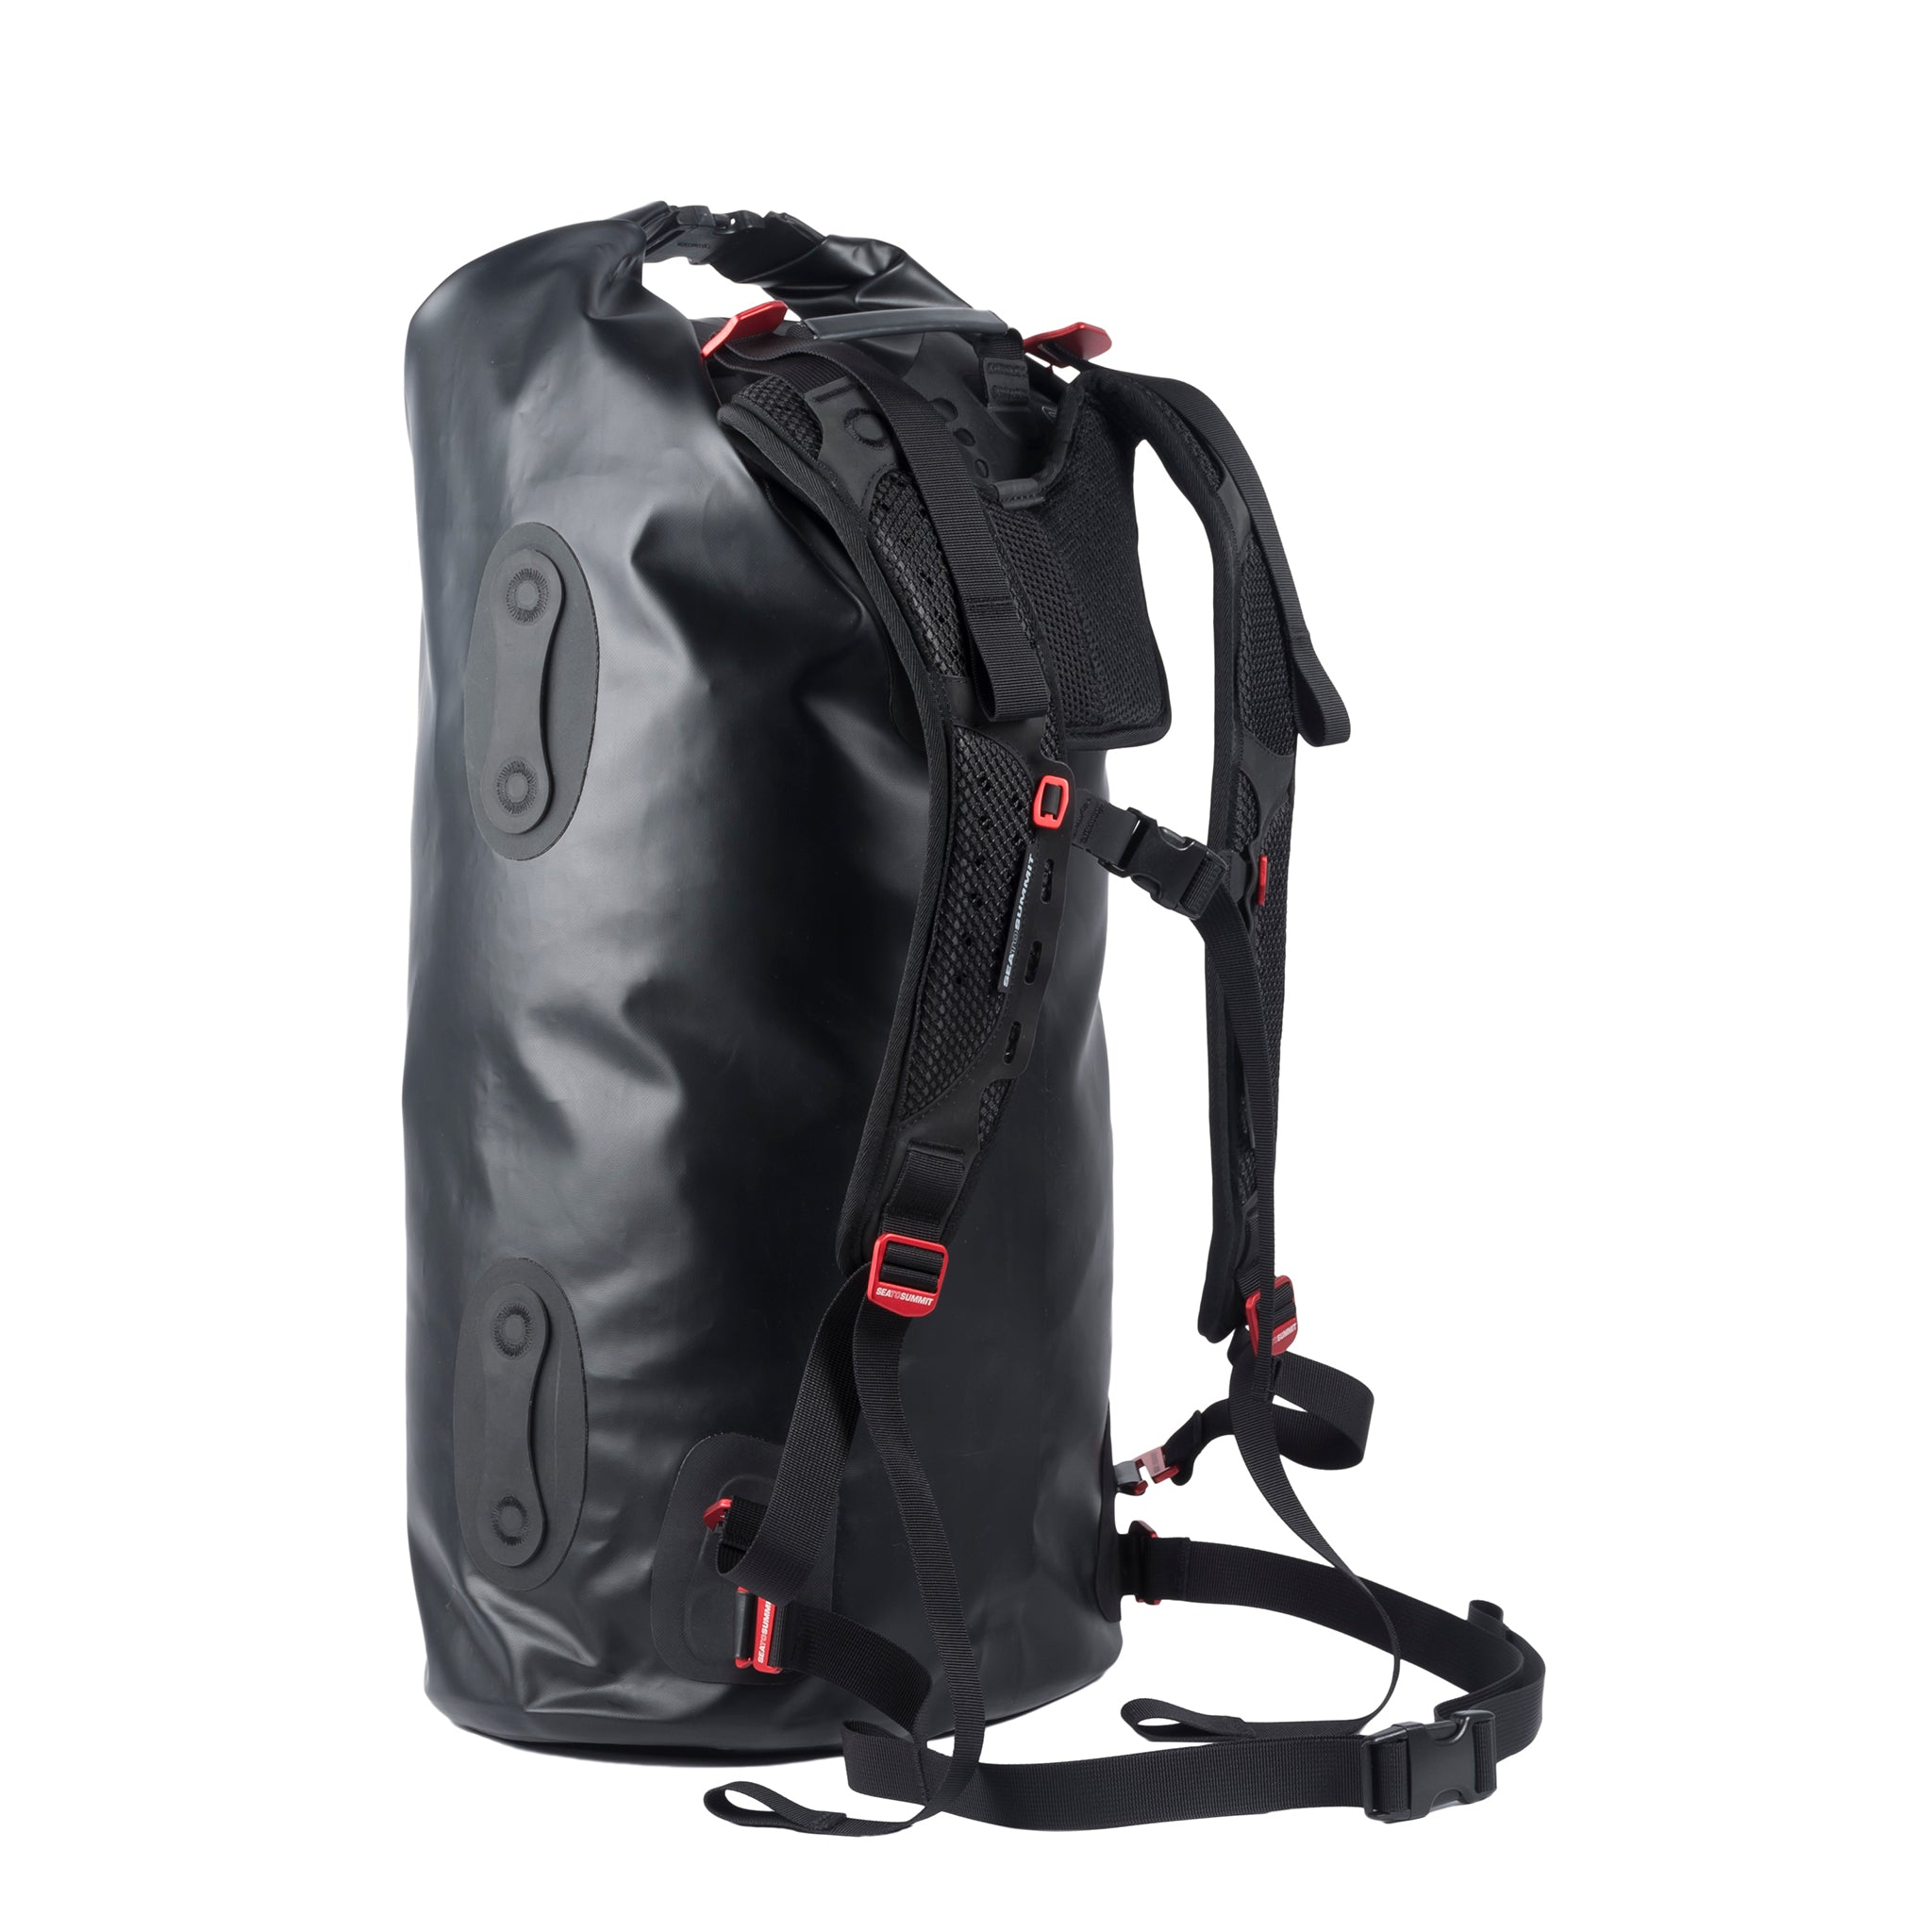 Hydraulic Dry Pack bag _ 35 liter _ black